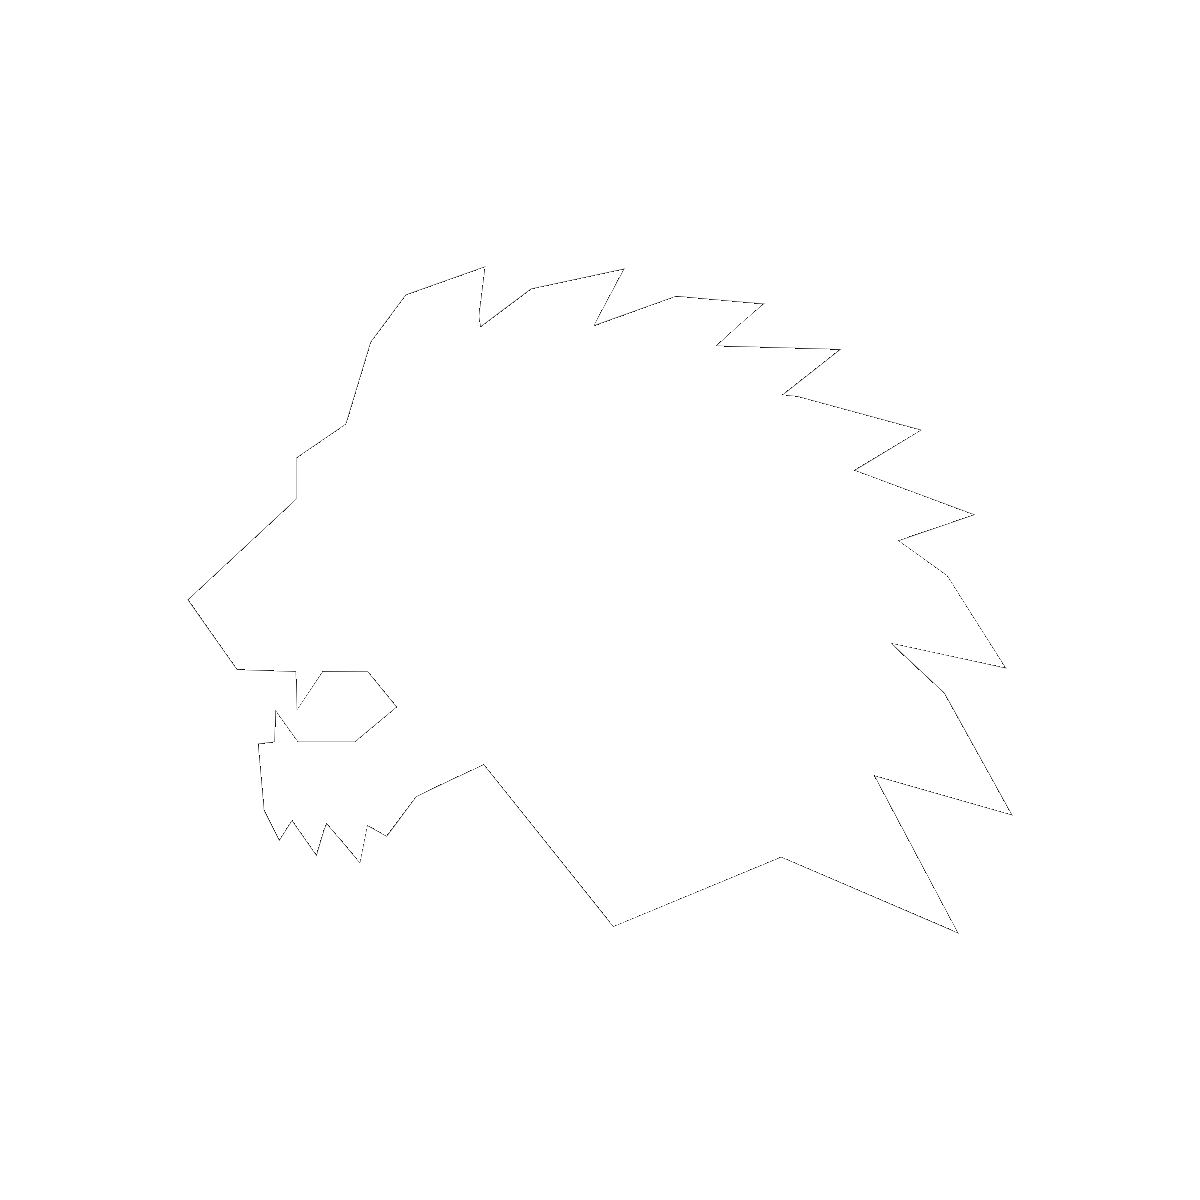 Symbol The Lion, Tiger, and Phoenix